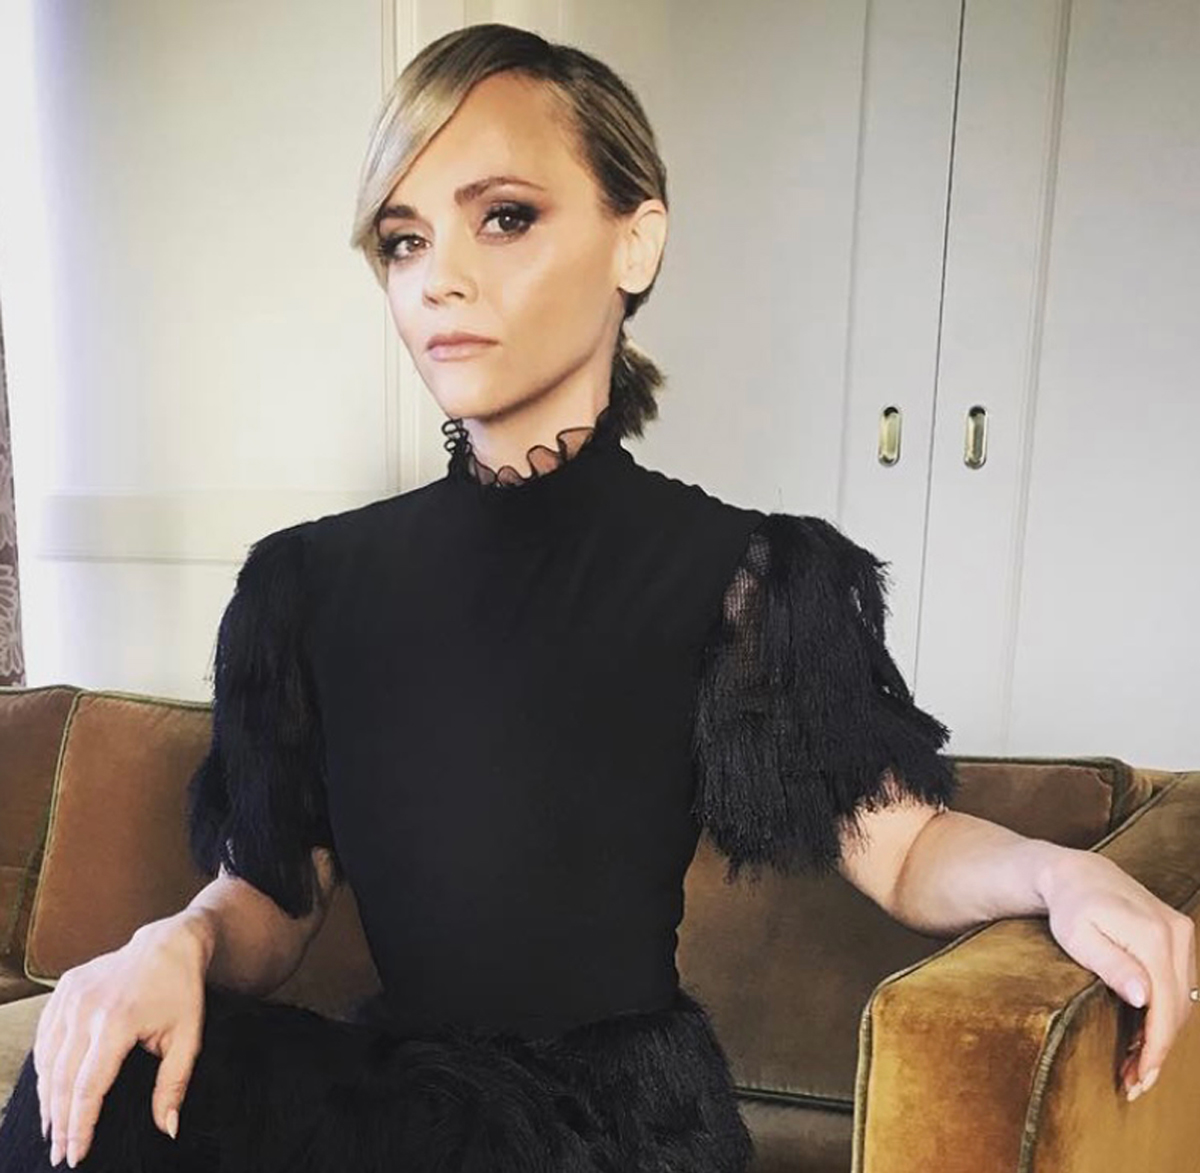 Christina Ricci Files Restraining Order Against Estranged Husband — Alleging 'Severe Physical And Emotional Abuse'